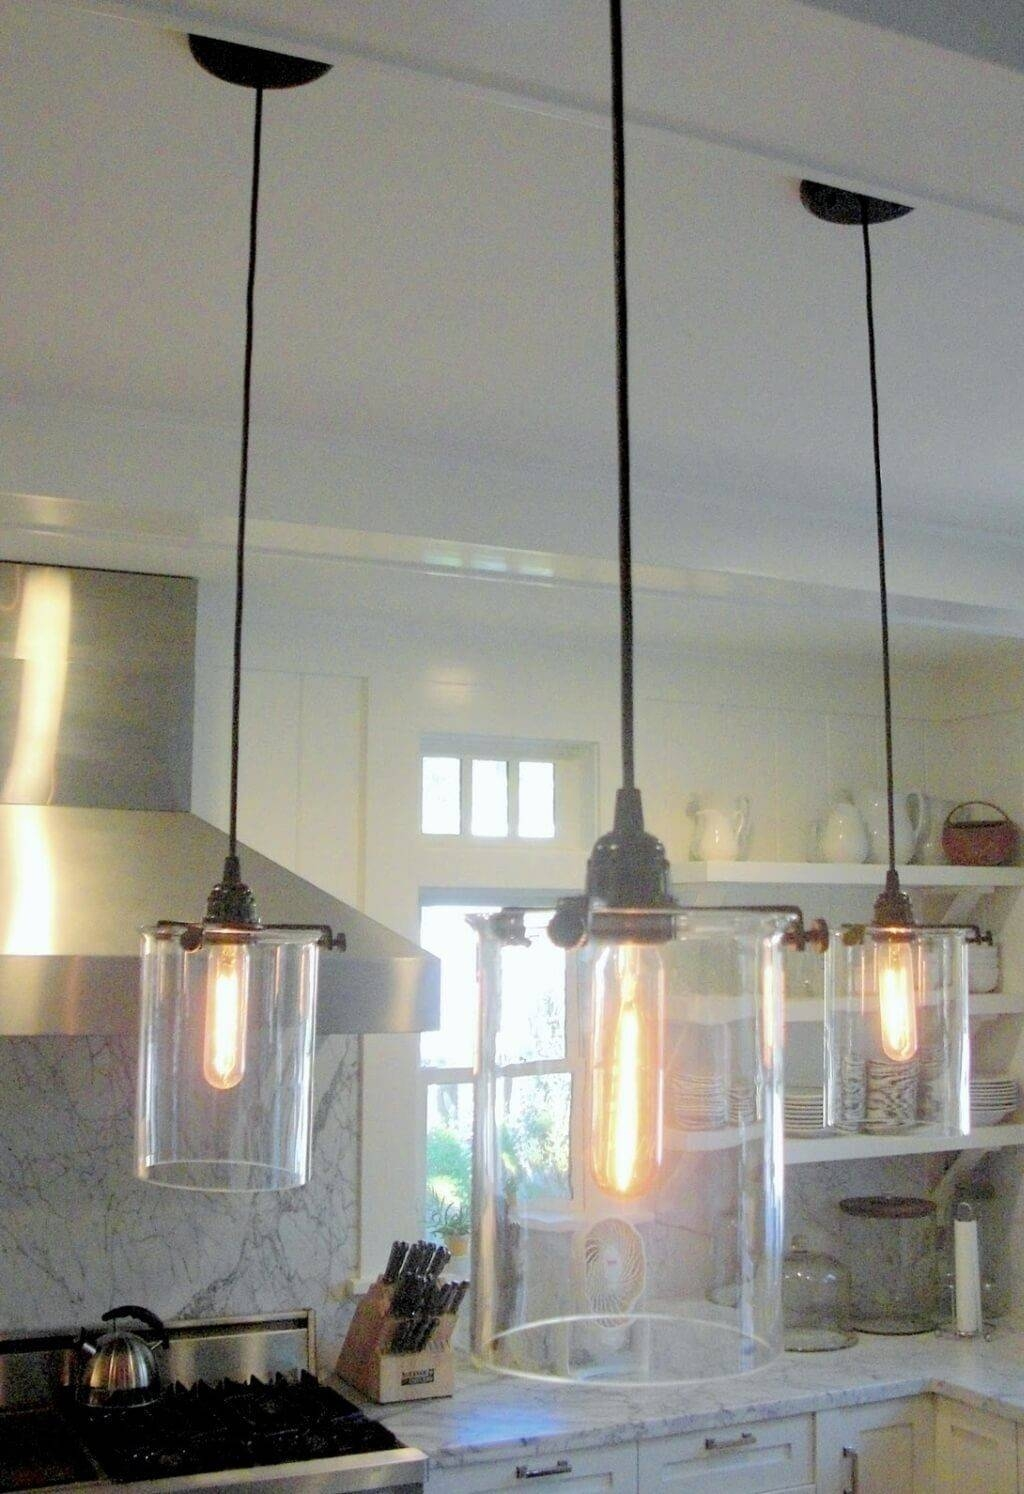 Lighting: Unique 3 Kitchen Pendant Lighting Fixture With Glass within Unique Mini Pendant Lights (Image 4 of 15)